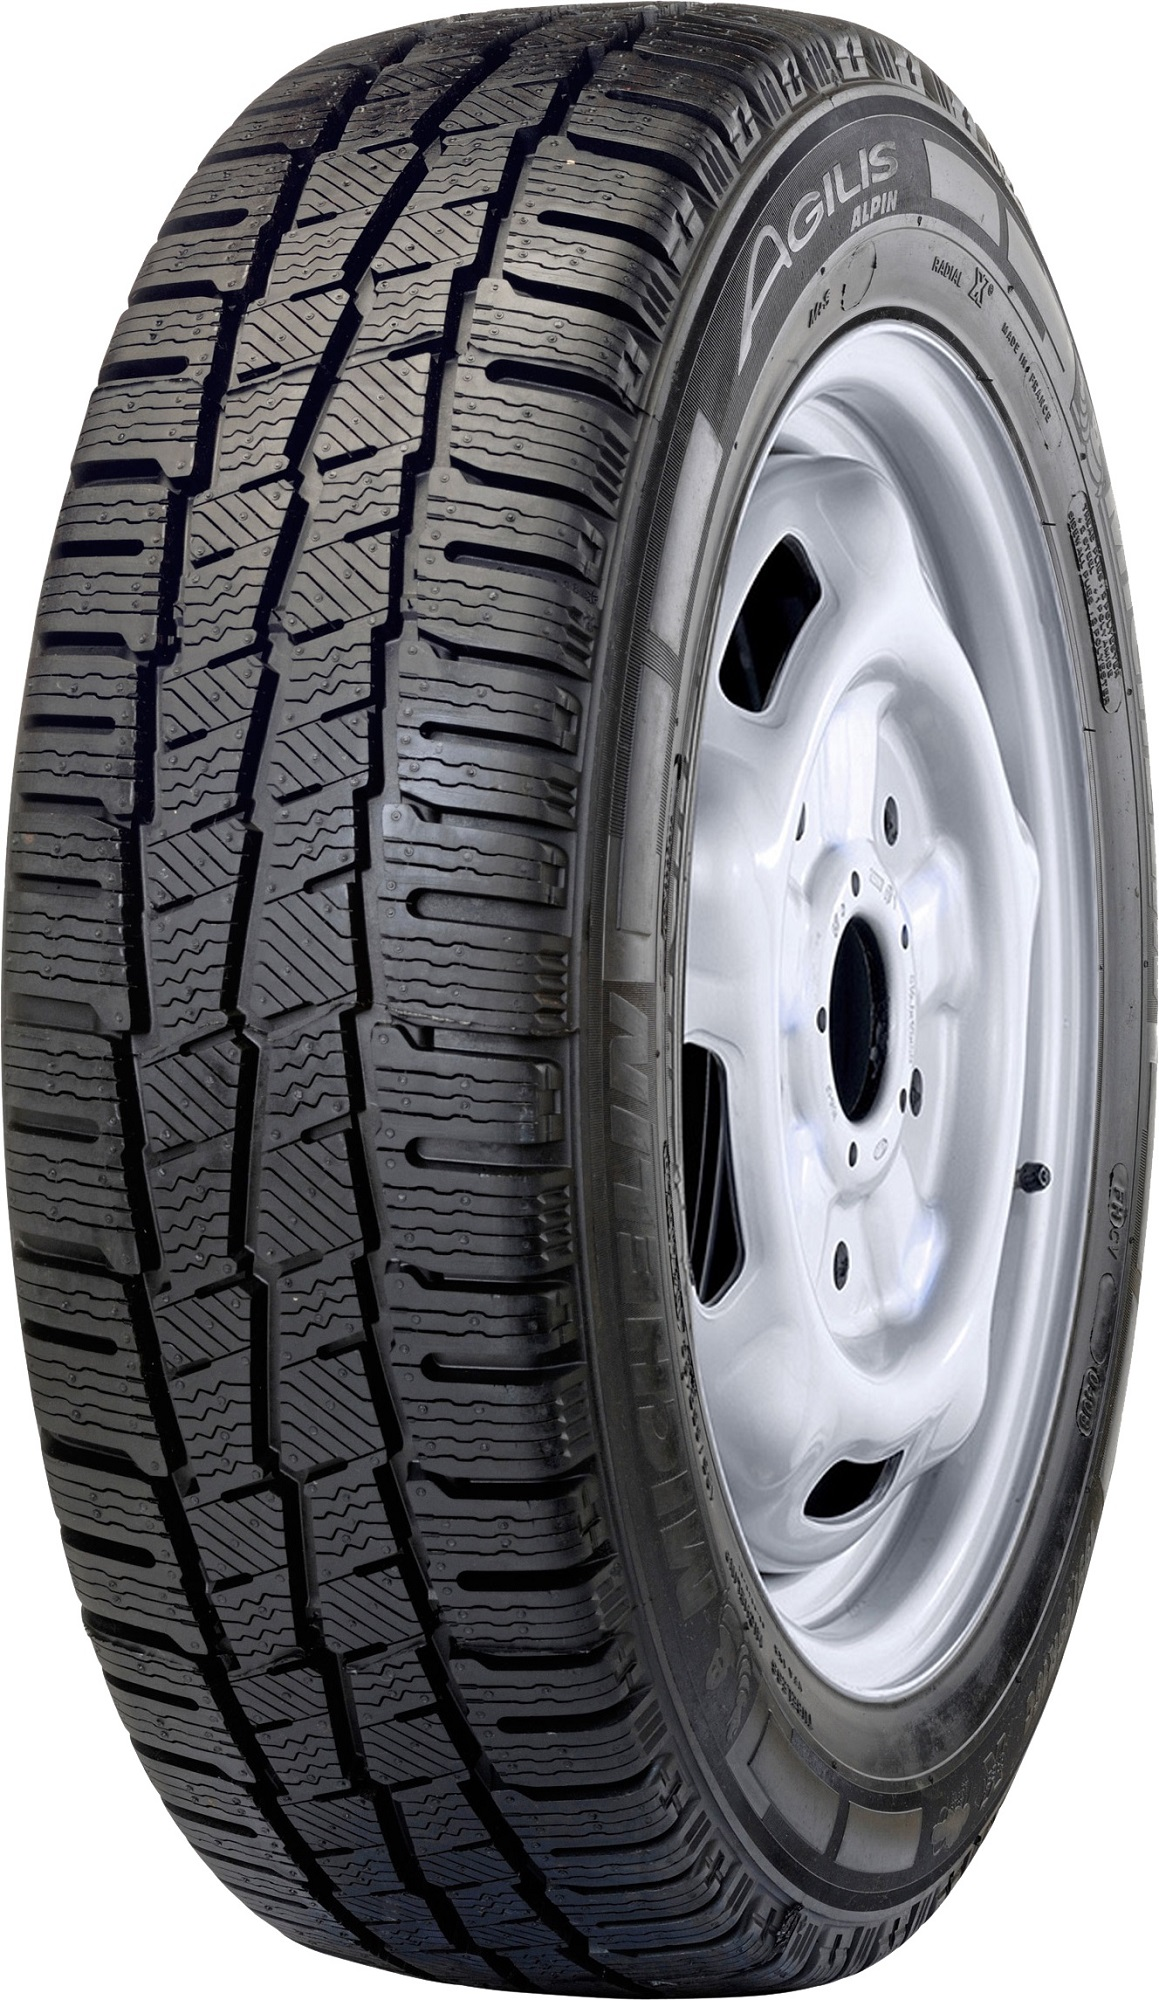 Anvelopa Iarna Michelin Agilis Alpin 195/70 R15c 1